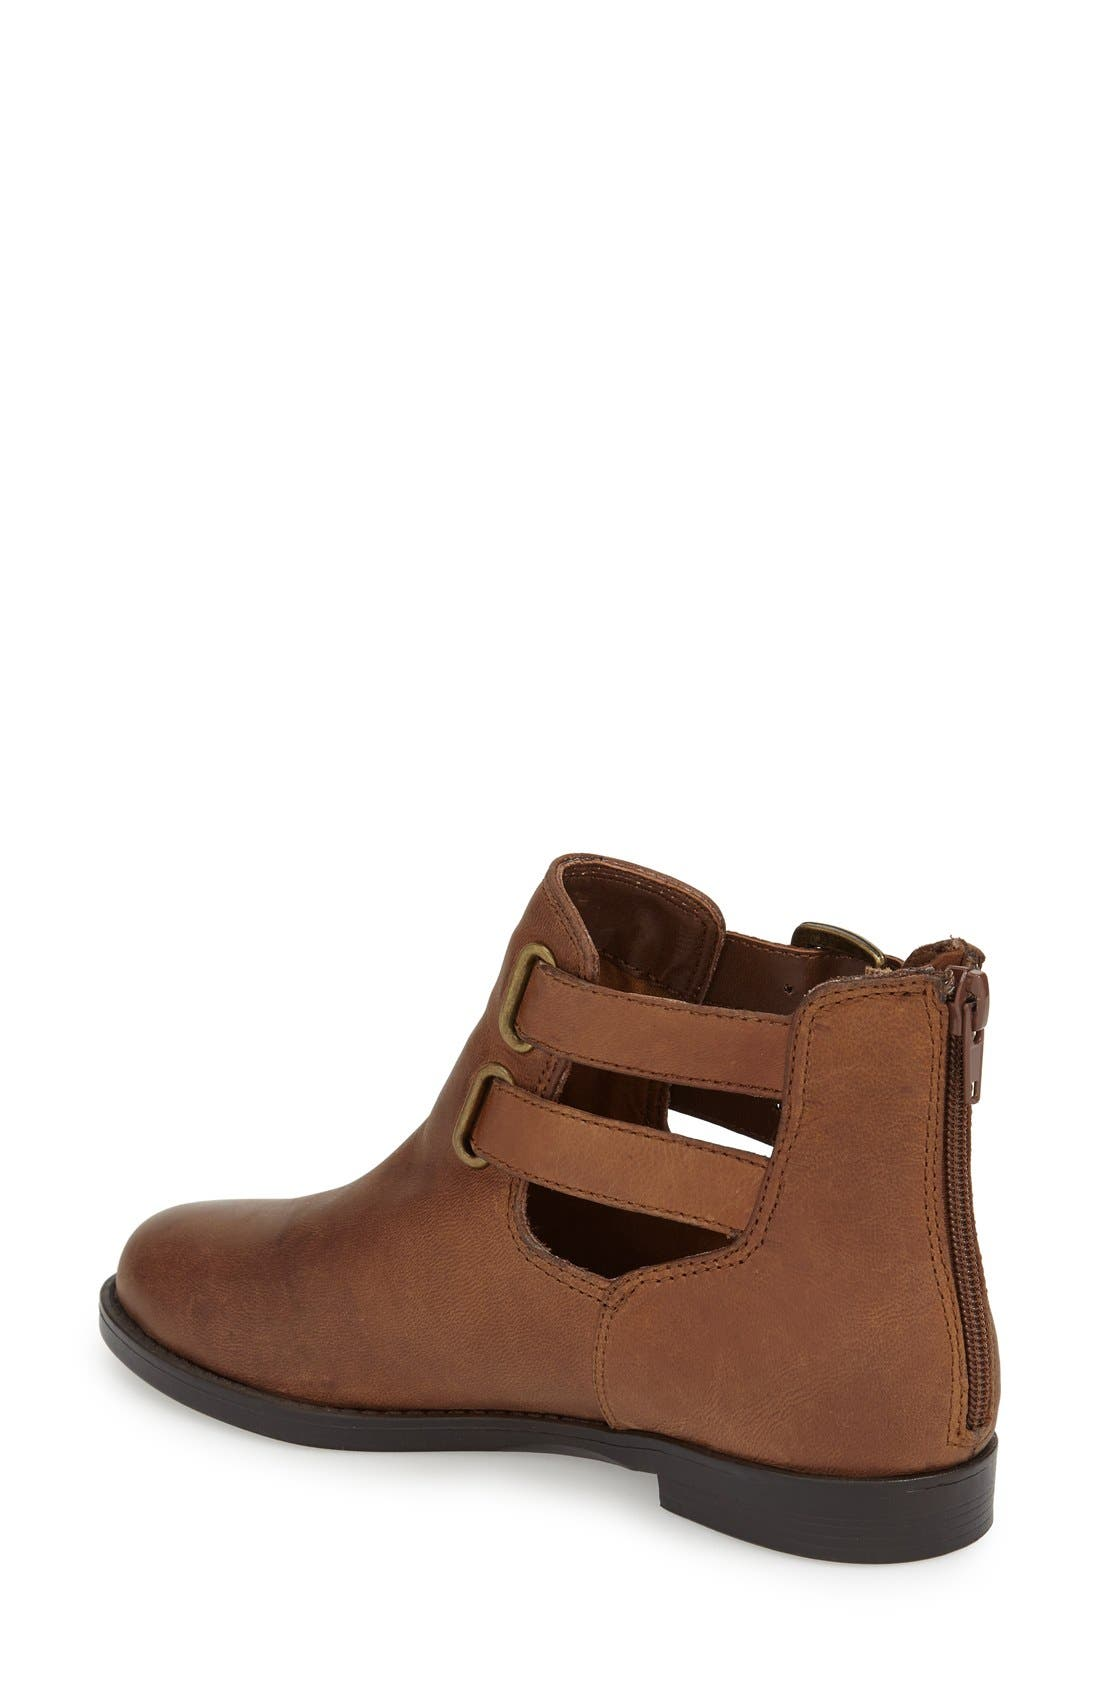 Alternate Image 2  - Bella Vita 'Ramona' Double Buckle Bootie (Women)